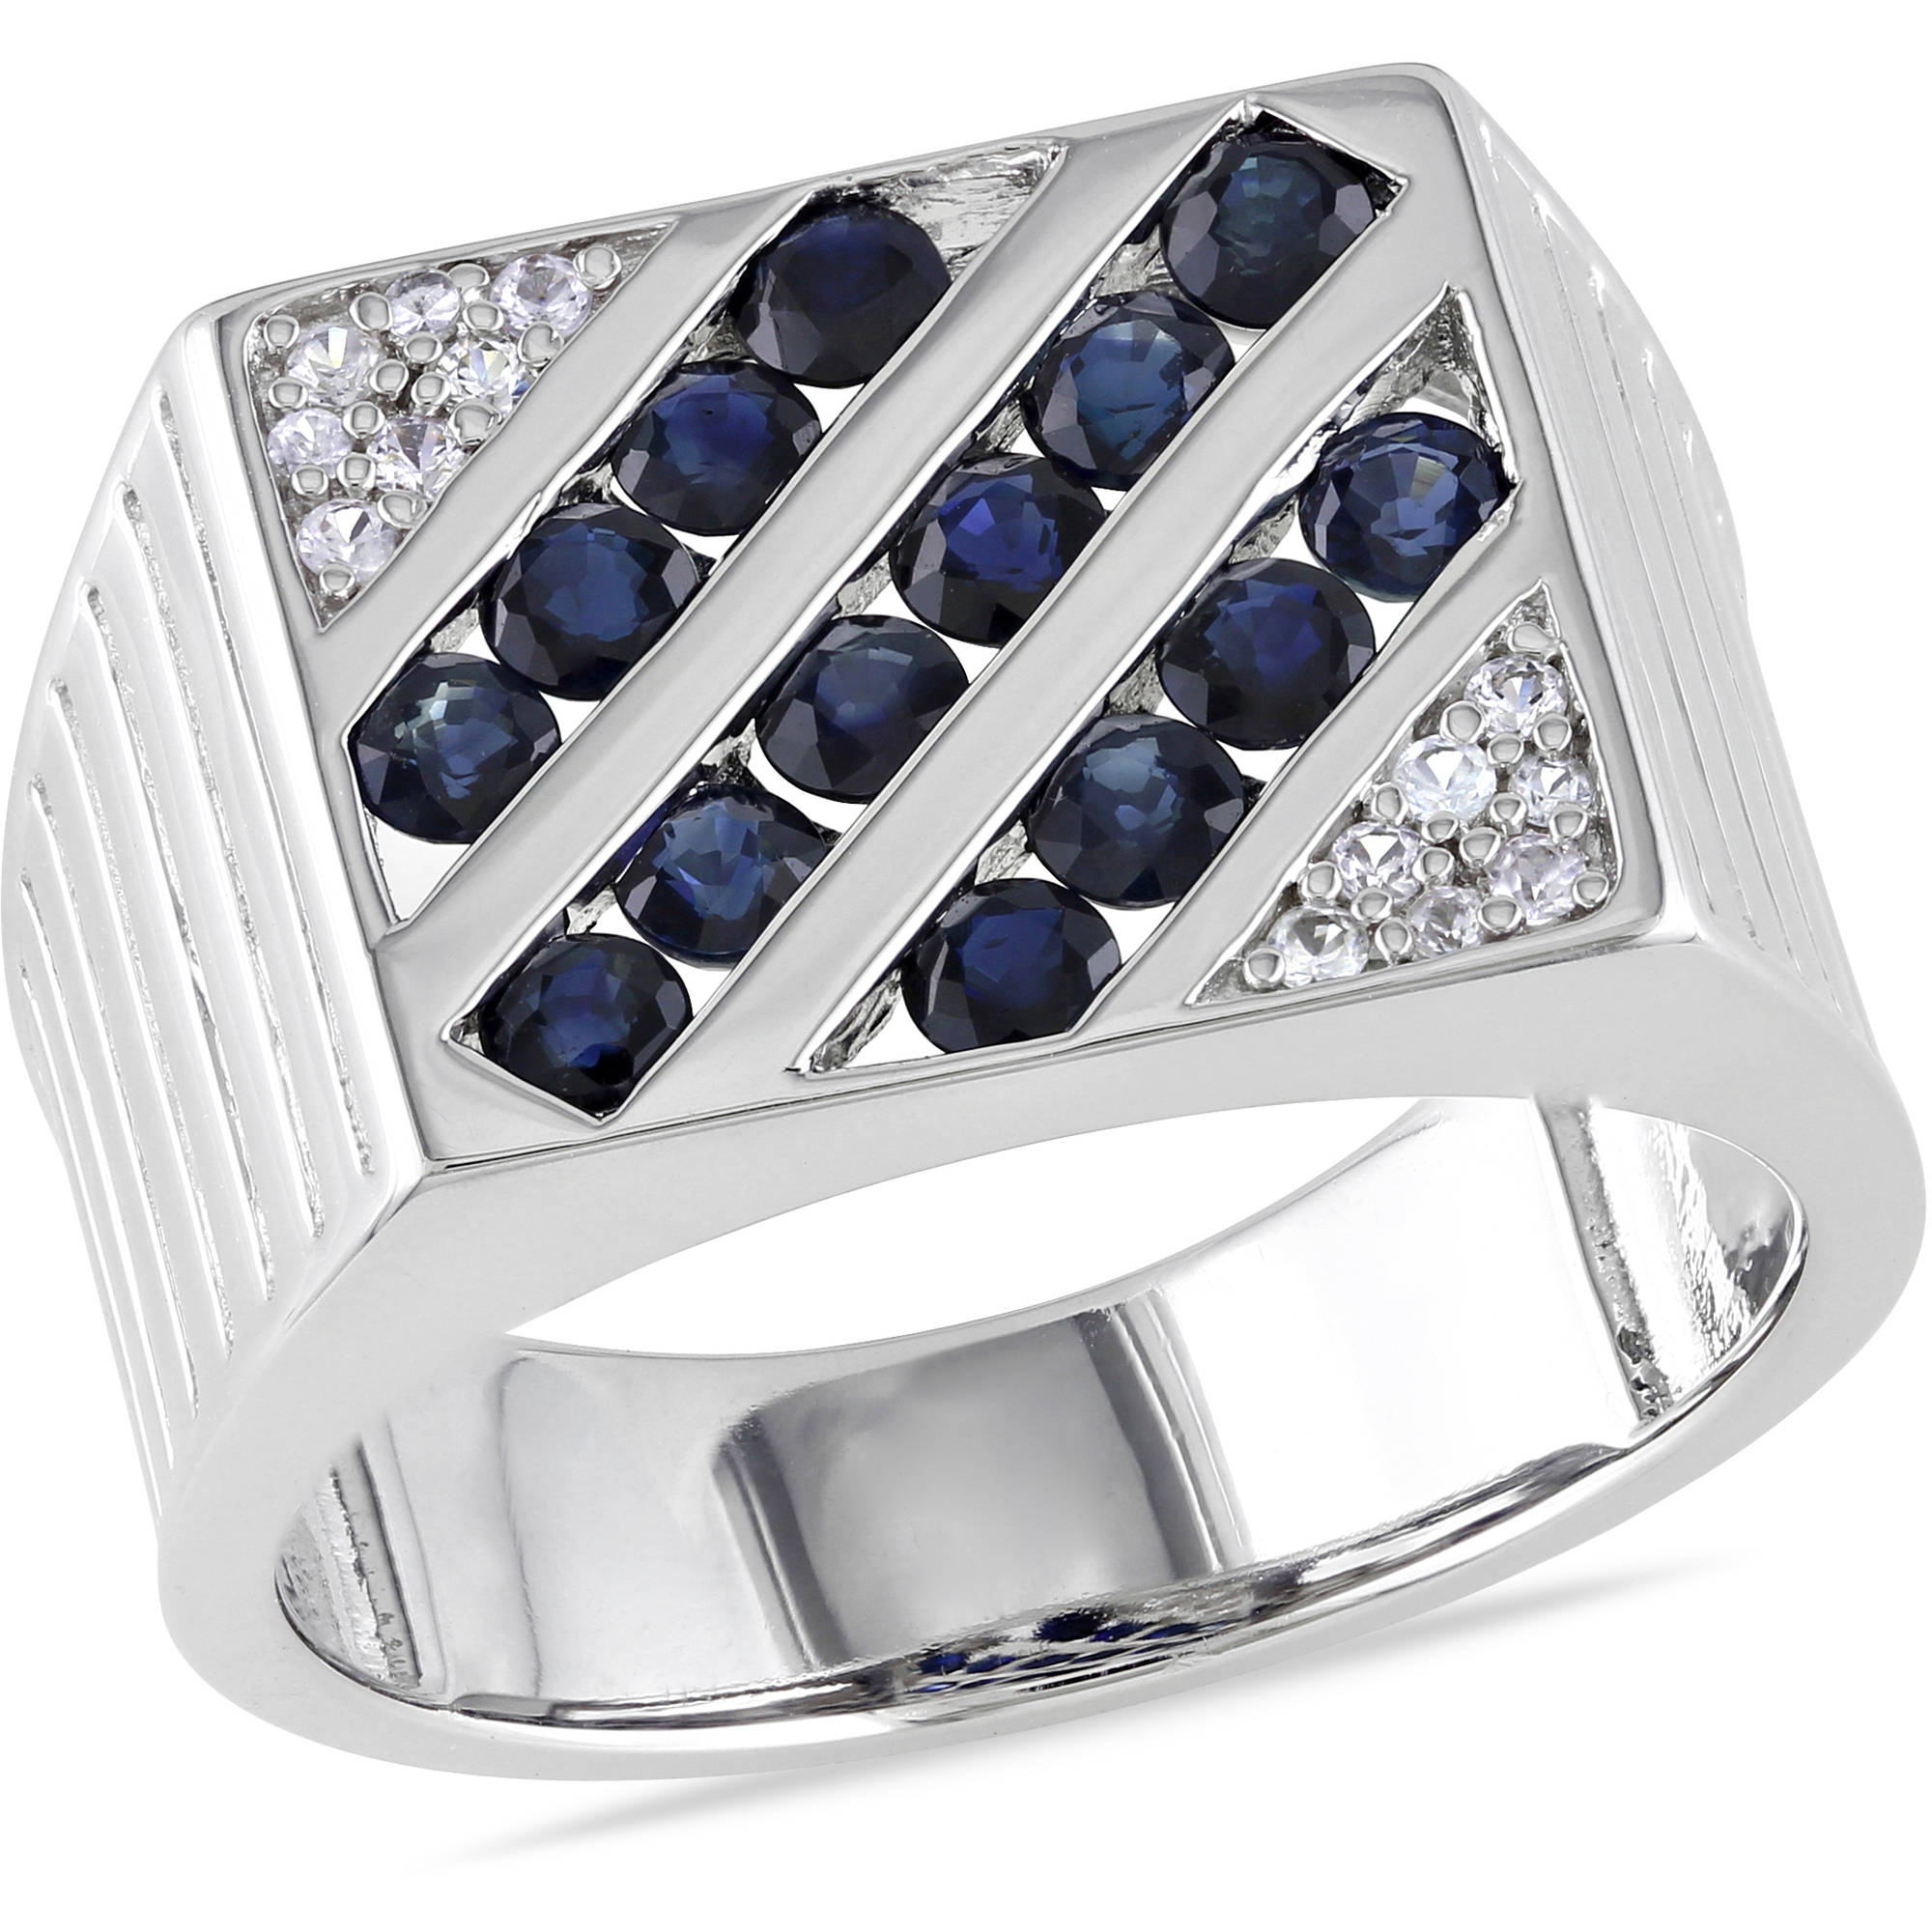 Tangelo Men's 2 Carat T.G.W. Blue and White Sapphire Sterling Silver Fashion Ring